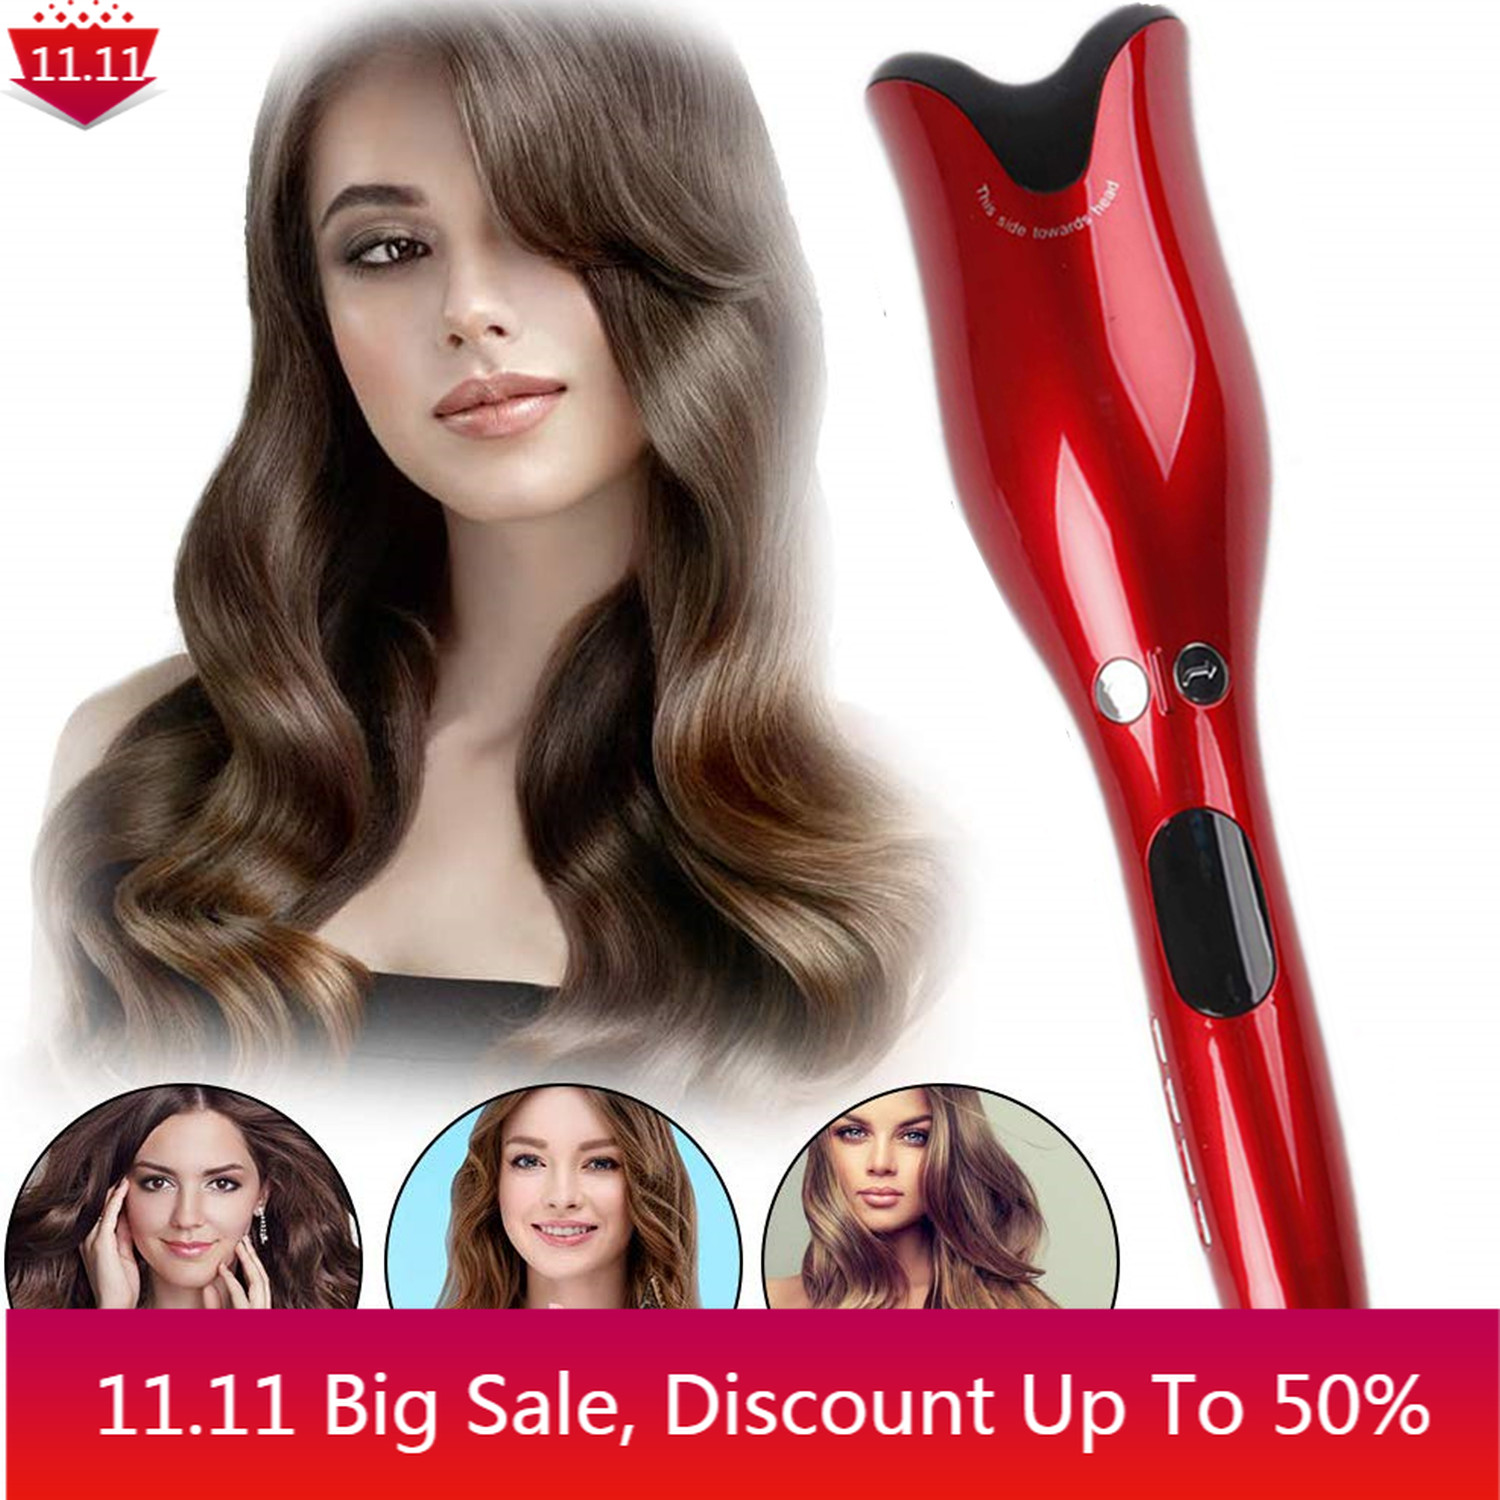 Hair Curling Iron Automatic Hair Curler Ceramic LCD Screen Curling Wand Hair Waver Crimper Hair Tool Air Spin and Curl Curler